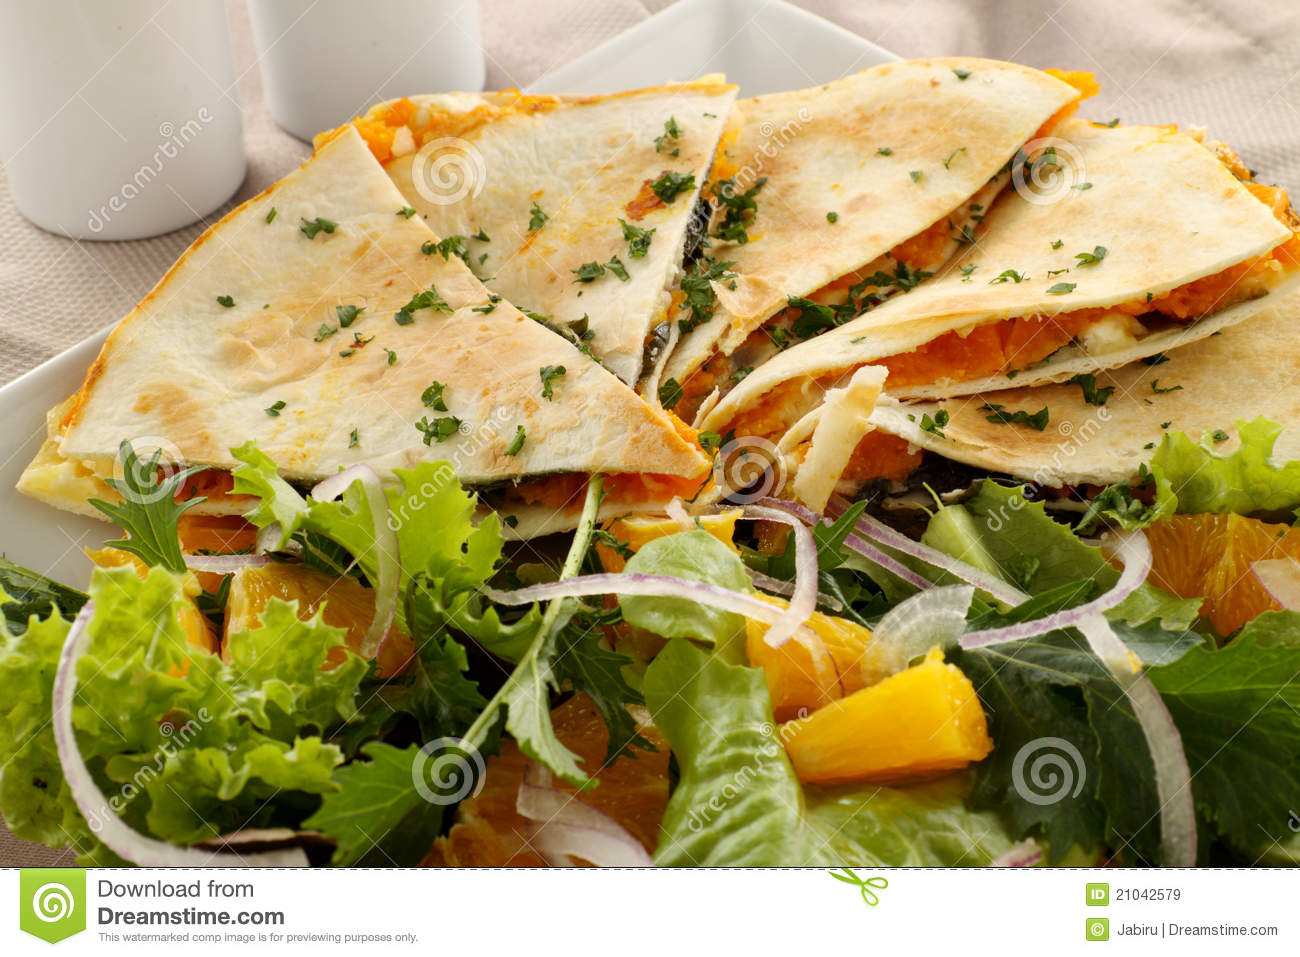 Pumpkin Quesadilla Royalty Free Stock Images - Image: 21042579